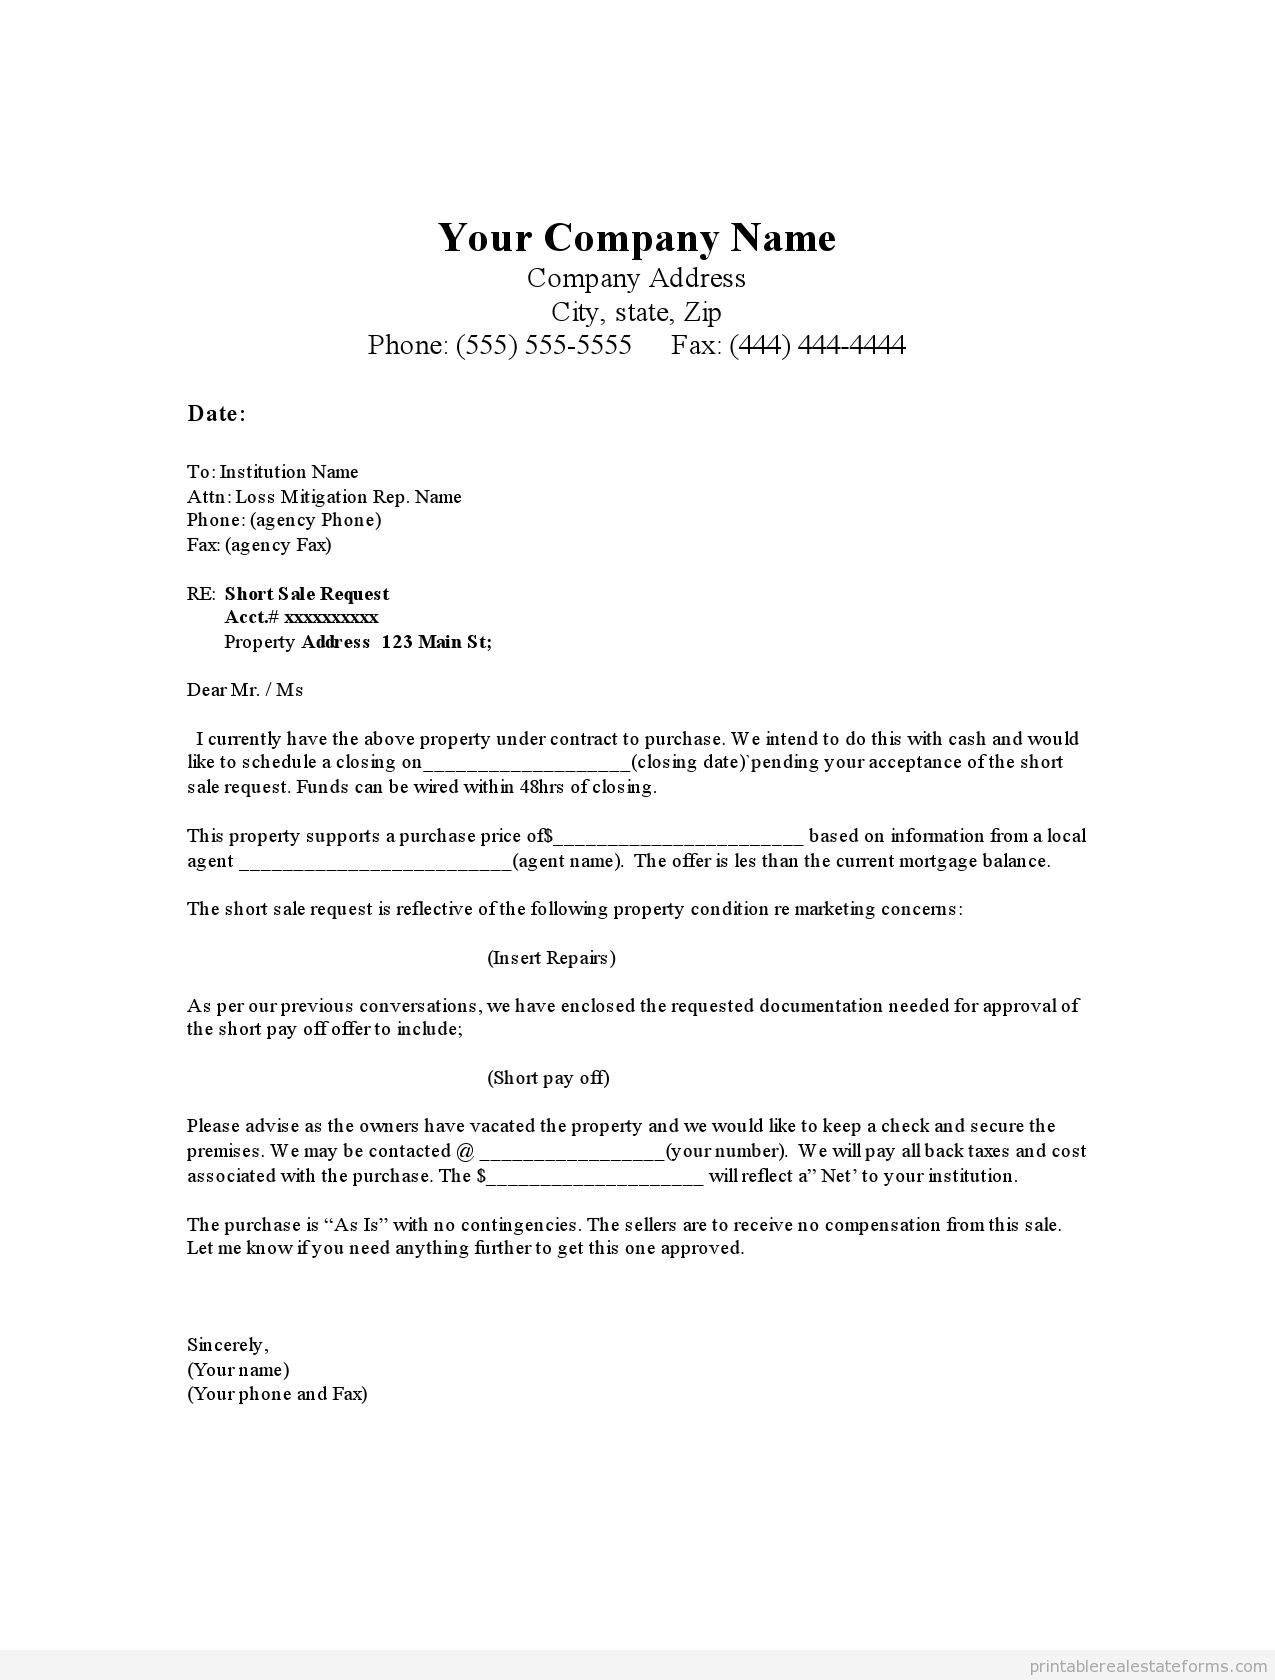 Home Purchase Offer Letter Template - Home Fer Letter Template Home Fer Letter Sample Ideas